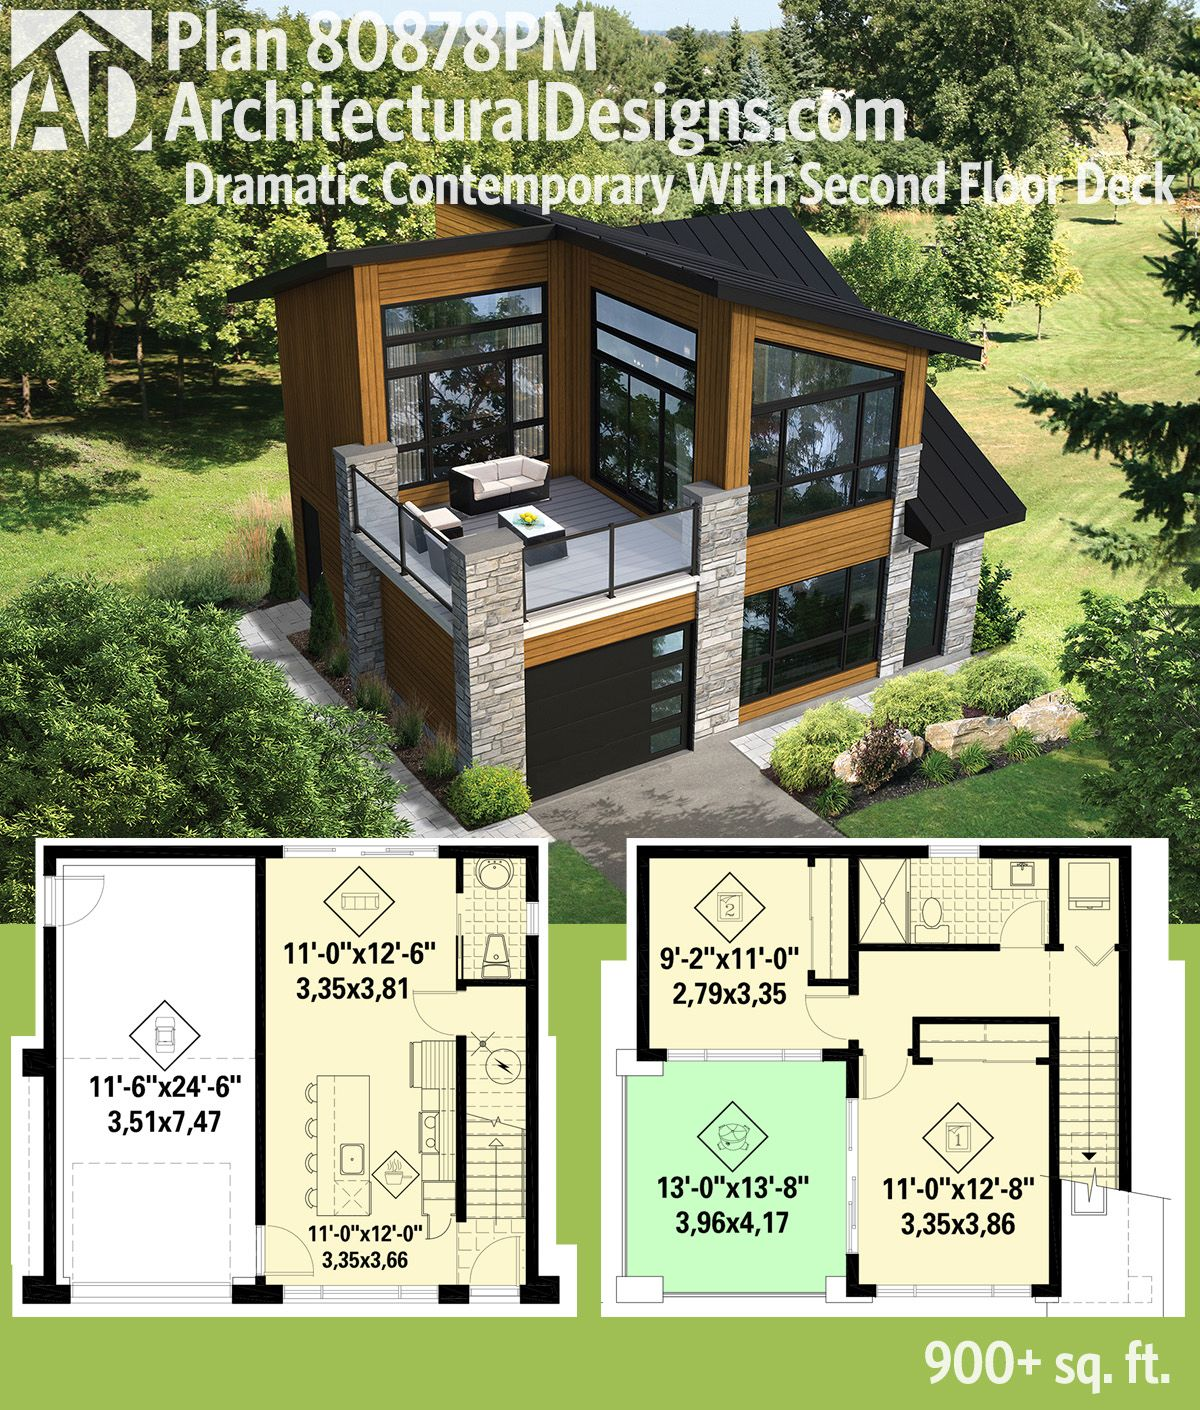 Plan 80878pm dramatic contemporary with second floor deck Contemporary house blueprints